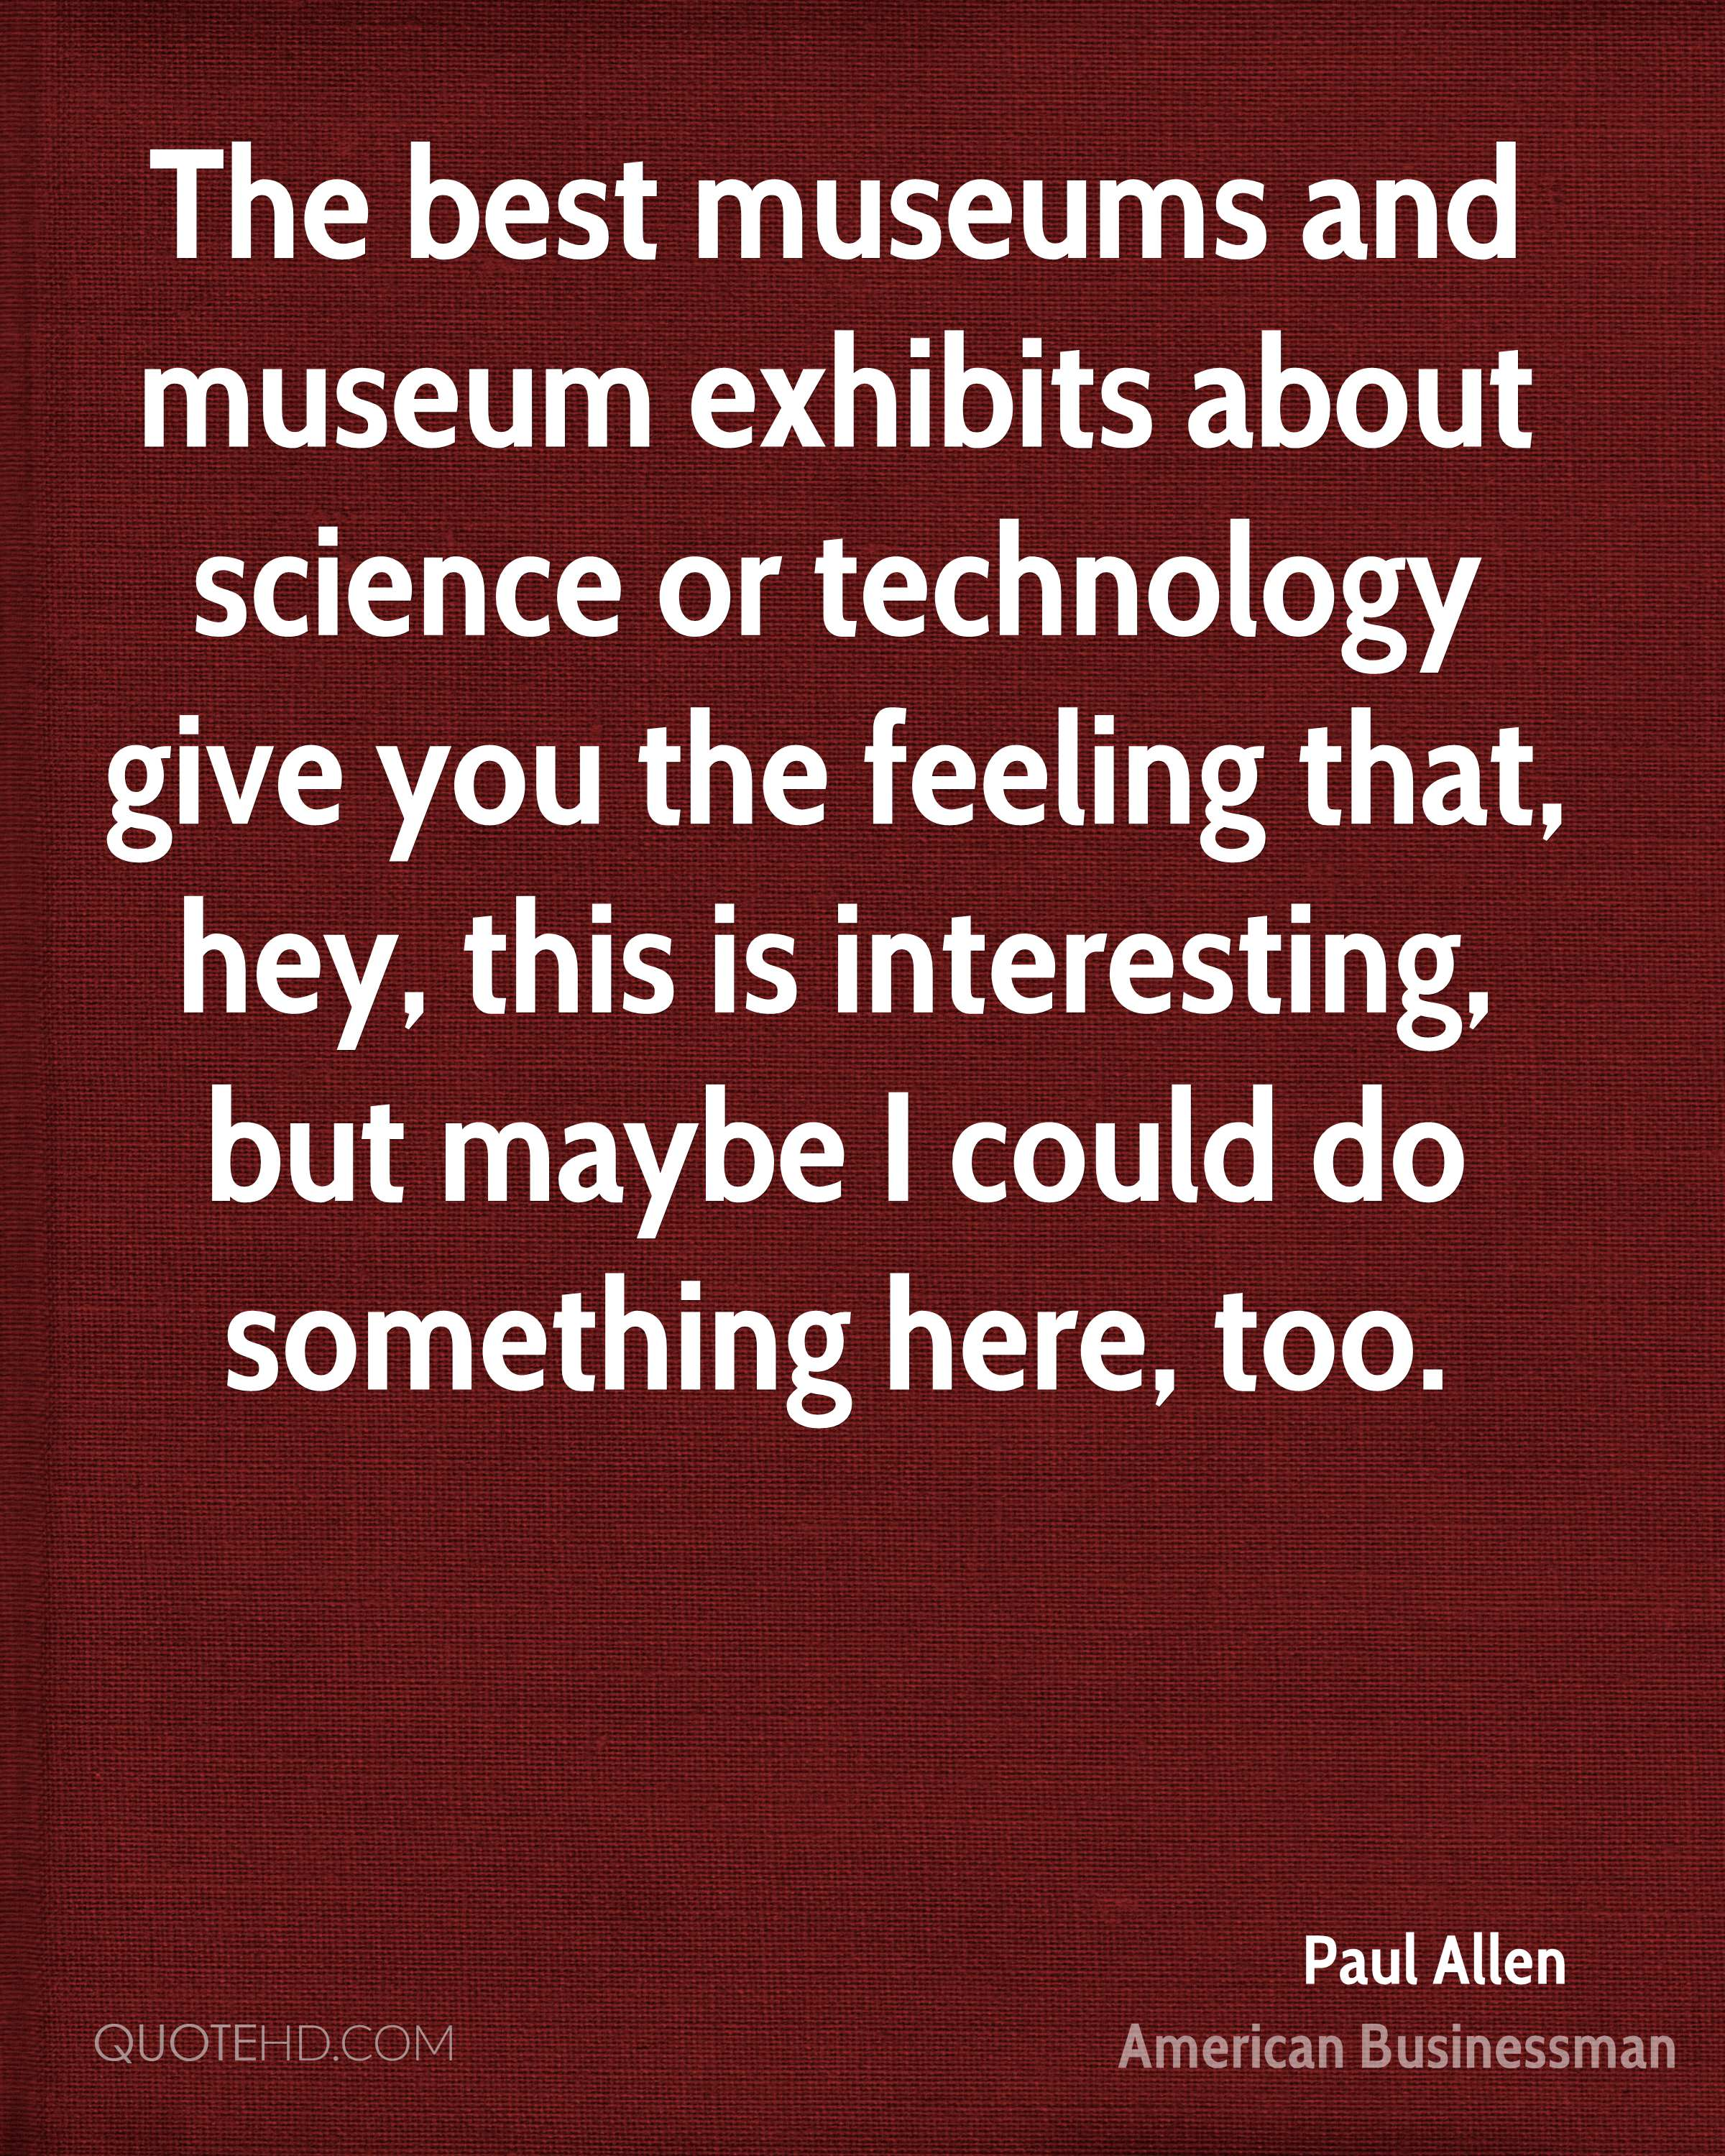 The best museums and museum exhibits about science or technology give you the feeling that, hey, this is interesting, but maybe I could do something here, too.